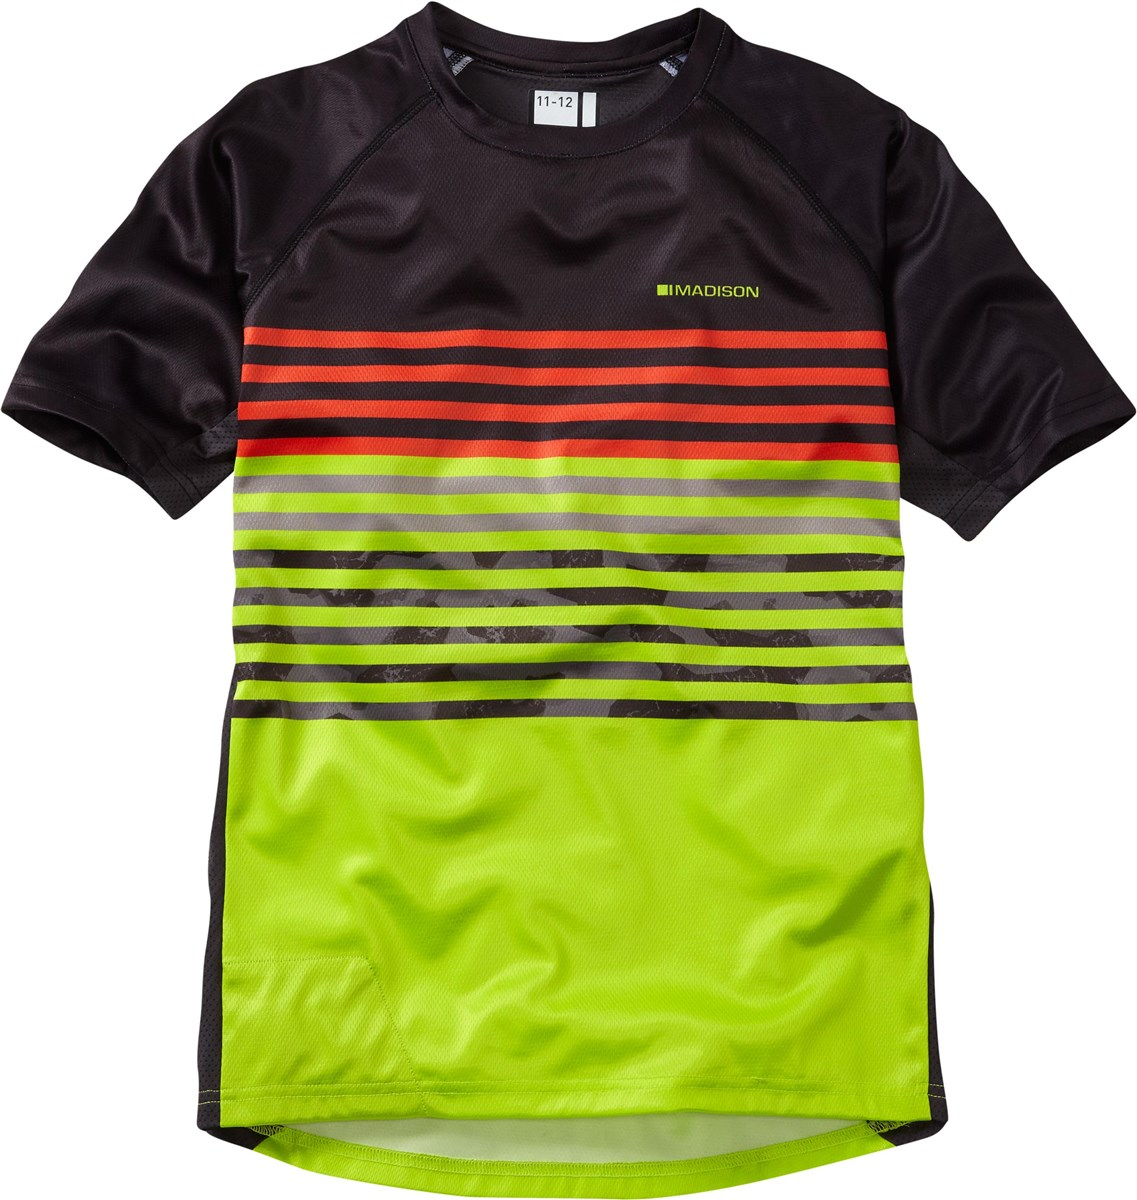 Madison Zen Youth Short Sleeve Jersey AW17